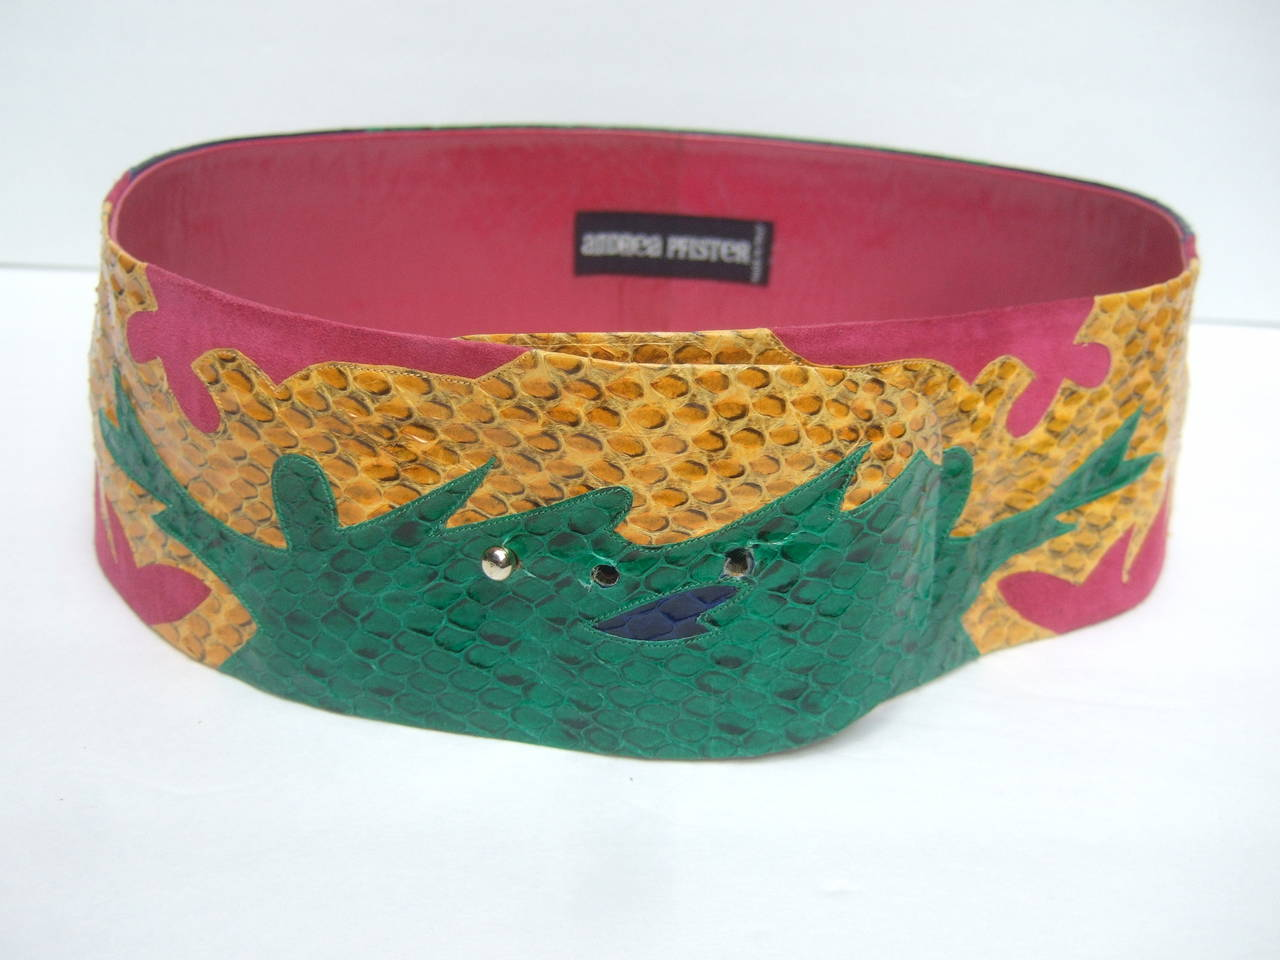 Exotic Italian Wide Snakeskin Fuchsia Suede Belt c 1980s In Excellent Condition For Sale In Santa Barbara, CA